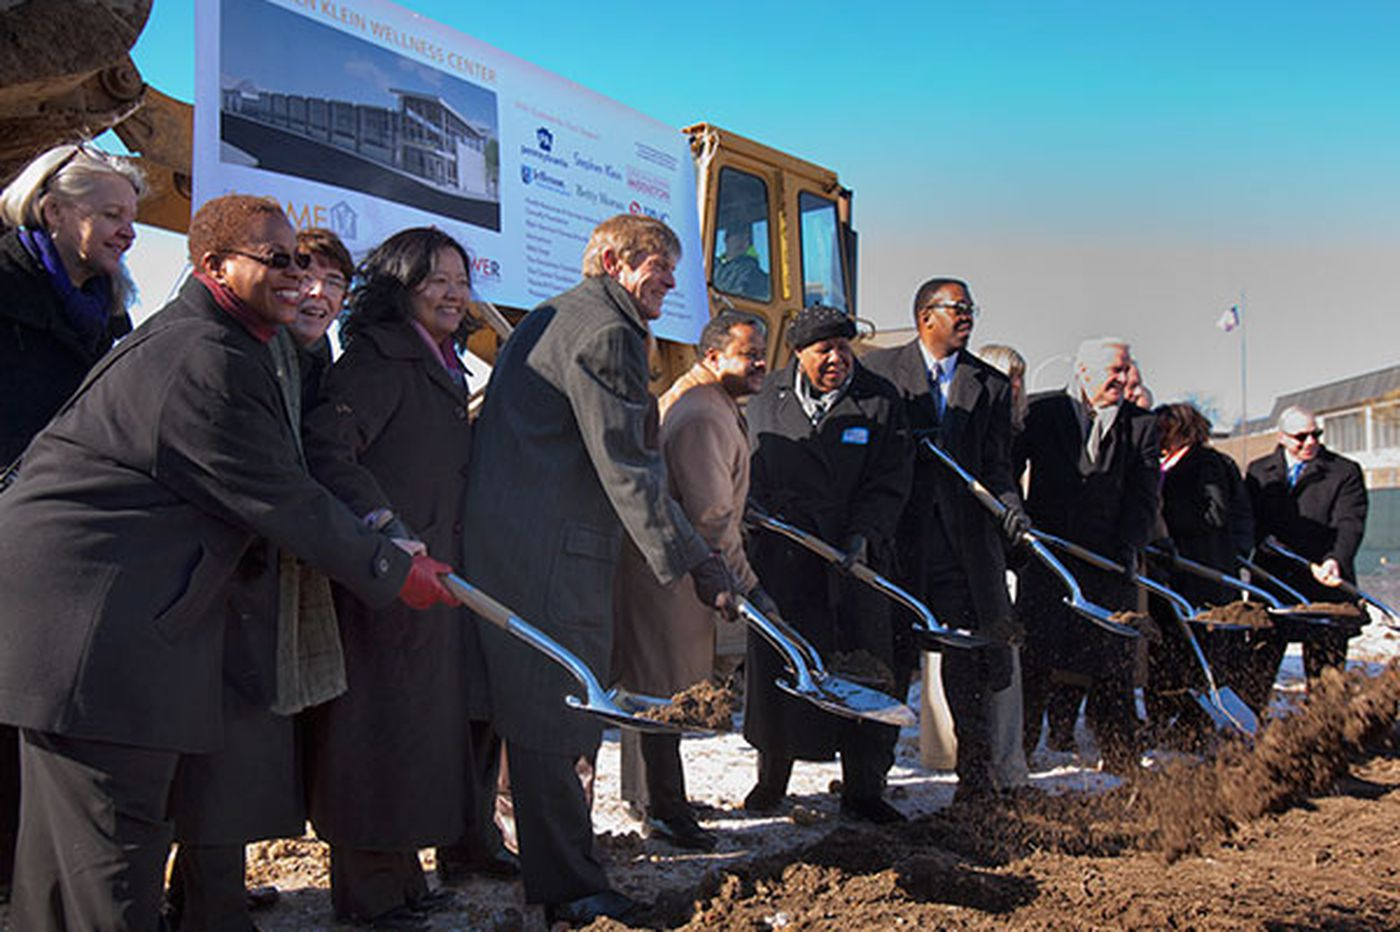 Health-care center to be built in N. Phila.